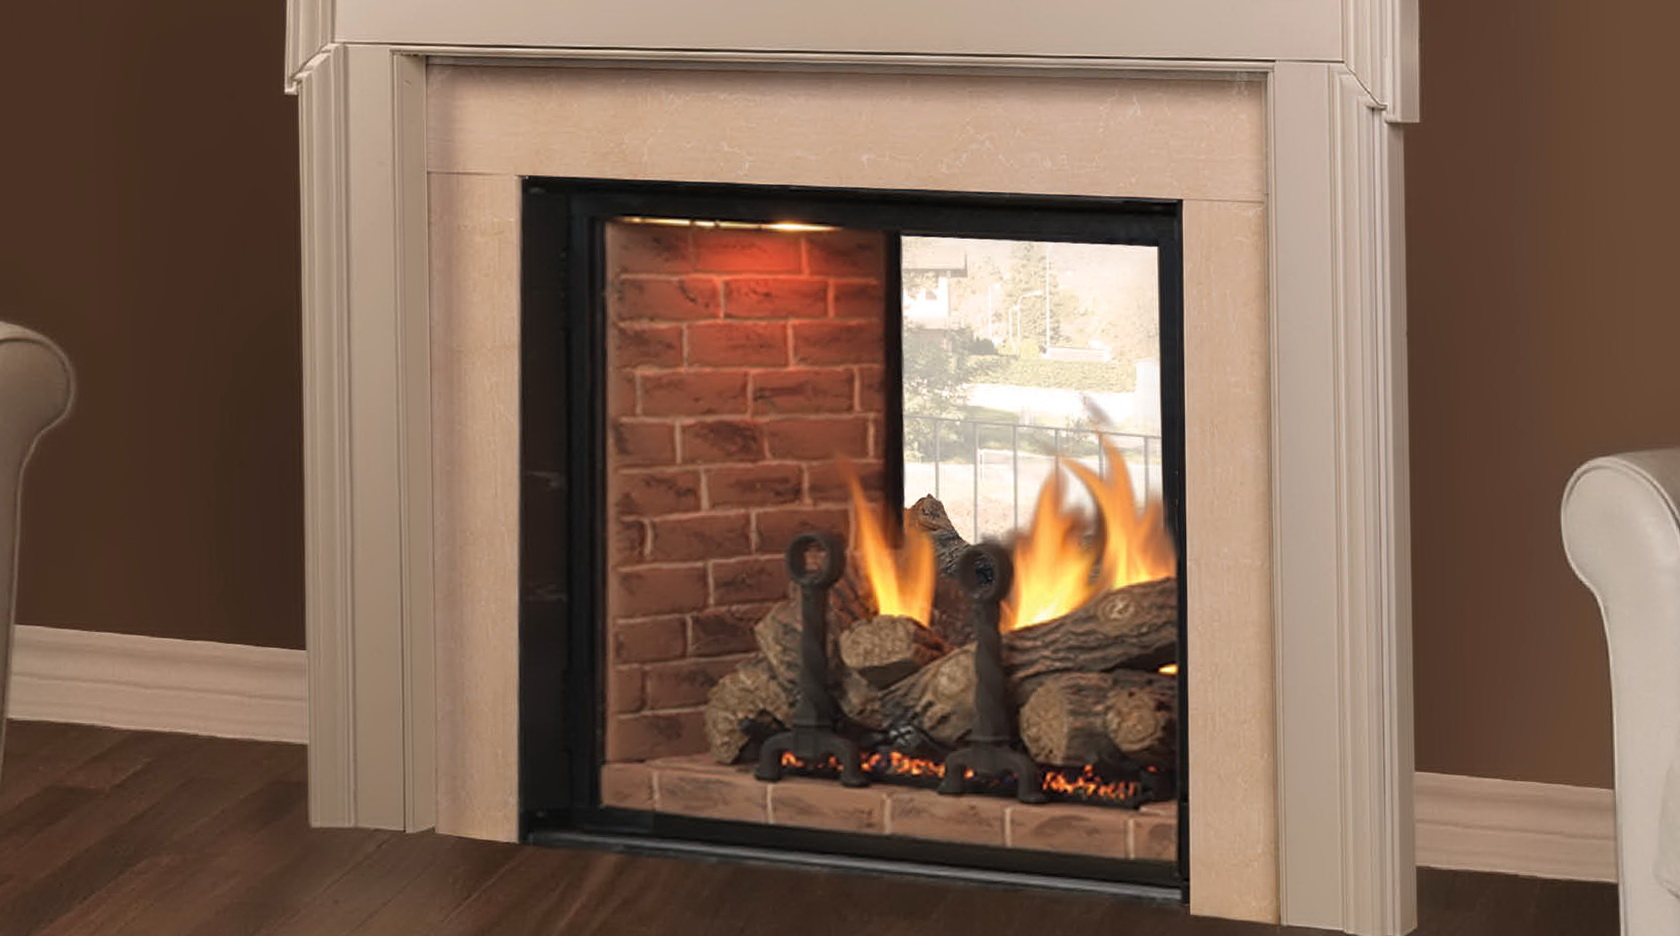 Indoor Gas Fireplace Kits | Home Design Ideas